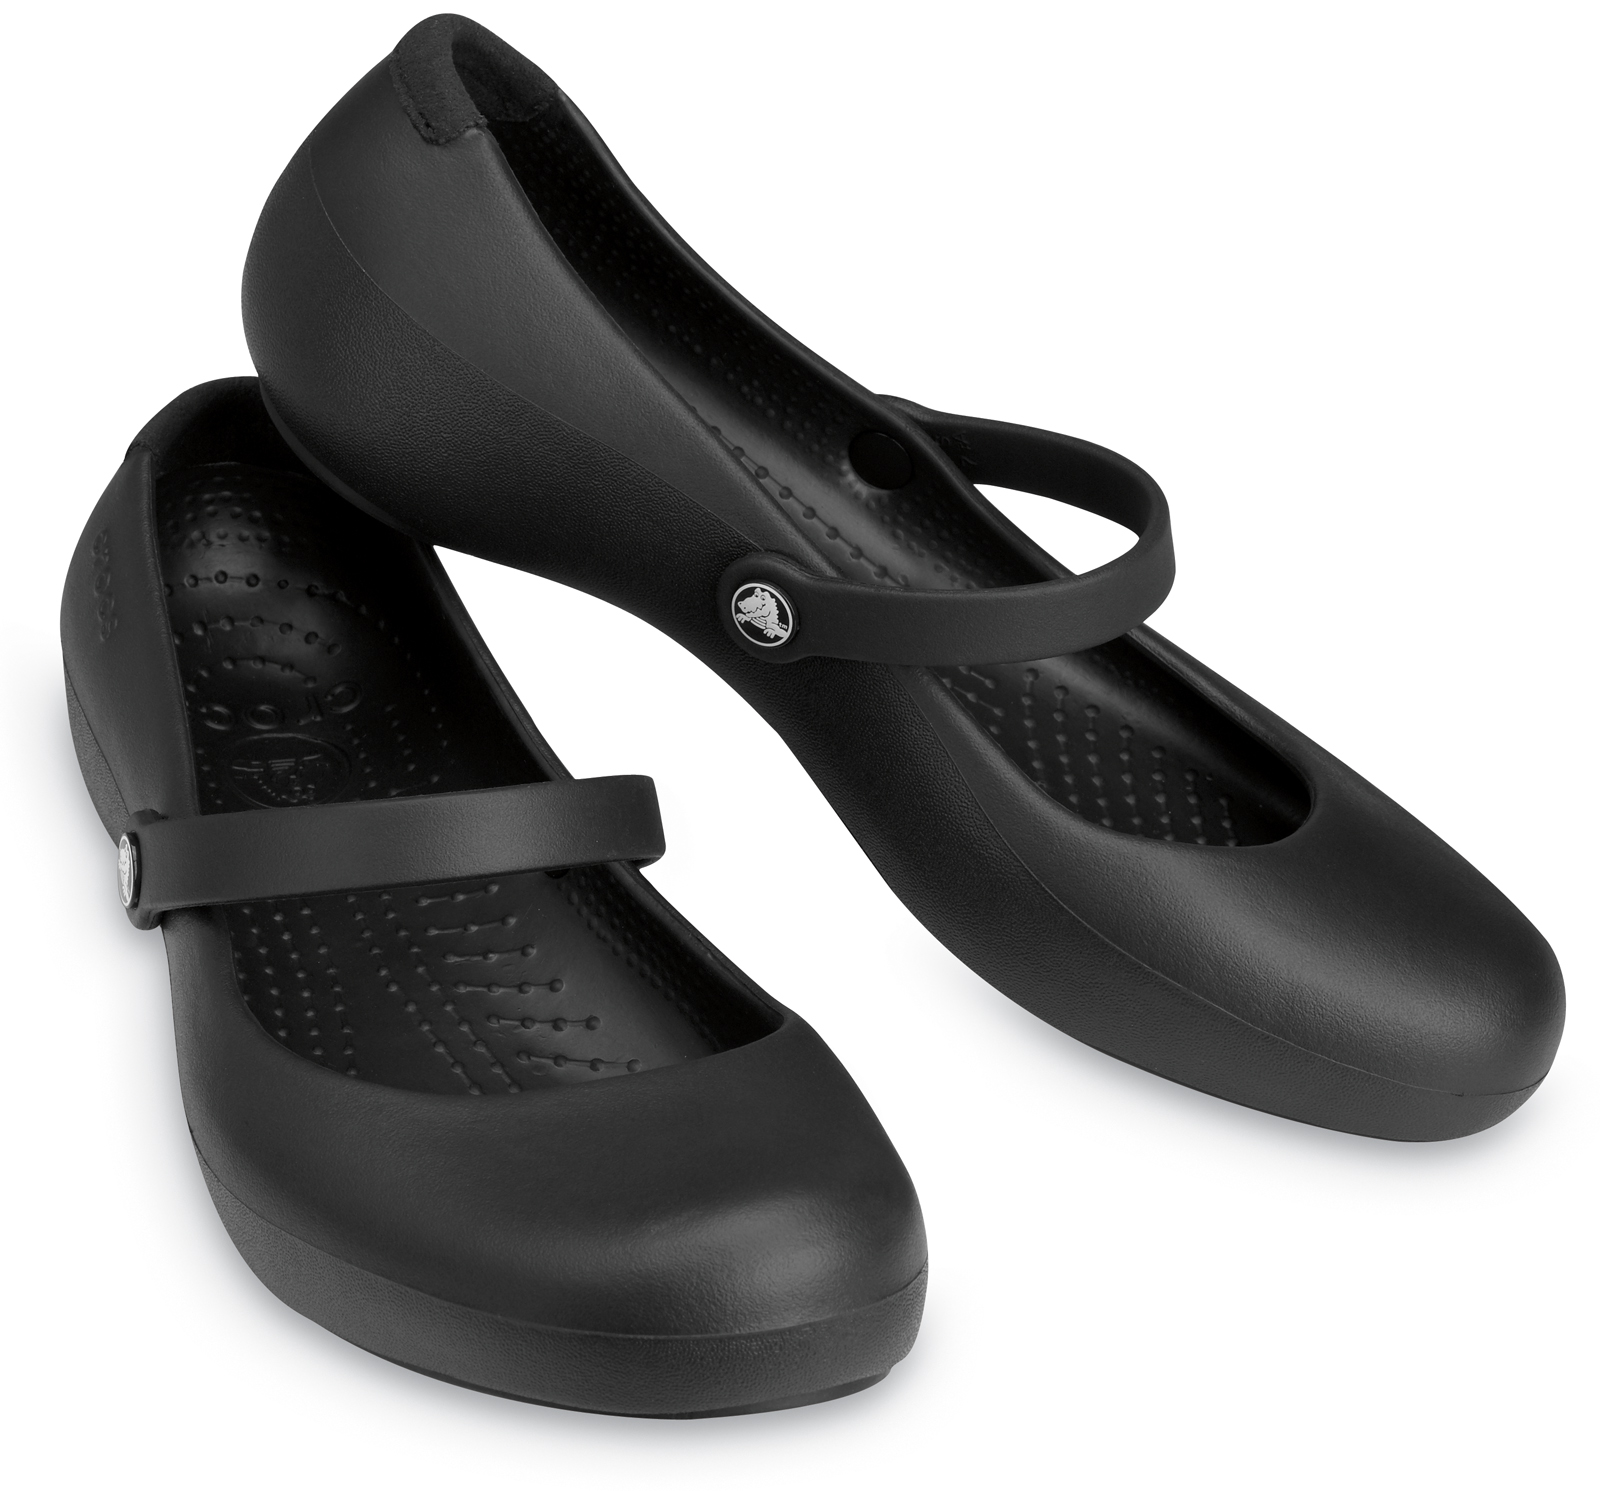 Crocs Alice Black Work Clogs Flat Mary Jane Womens Shoes ...